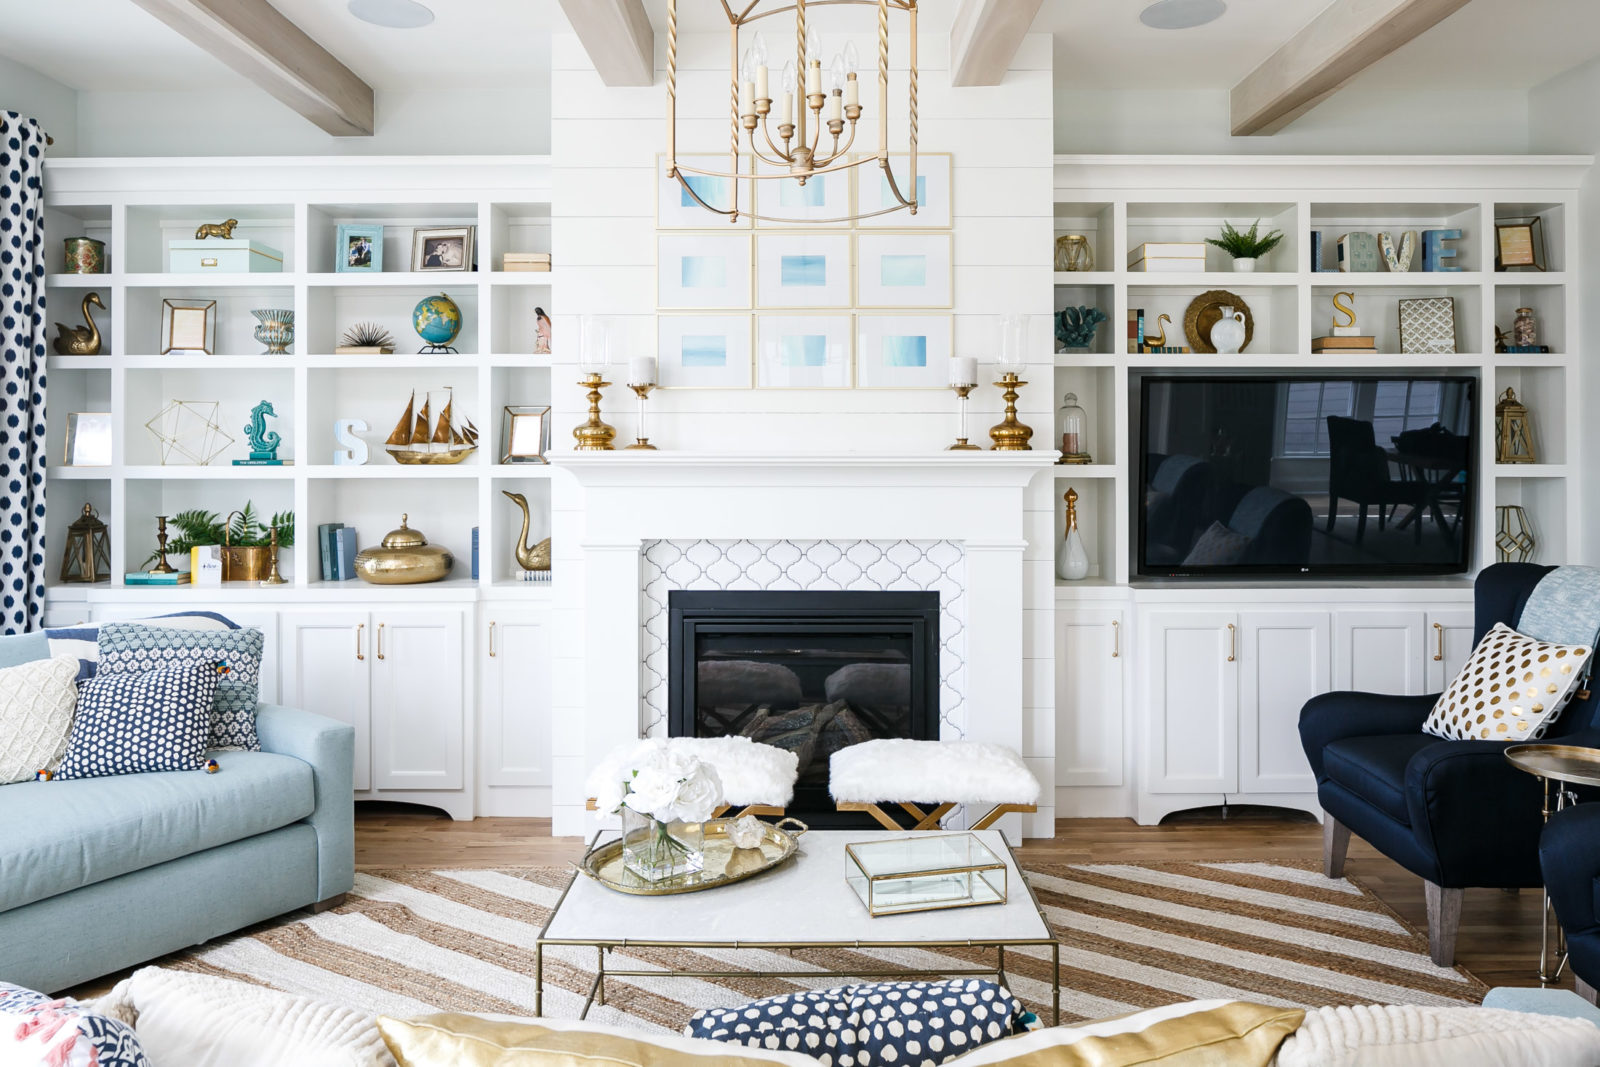 281545414181869452 also Interior Design Courses Louisville Ky in addition Konyhasziget Konyha likewise Blog Page as well Milou Ket Services. on ket interior design trends 2016